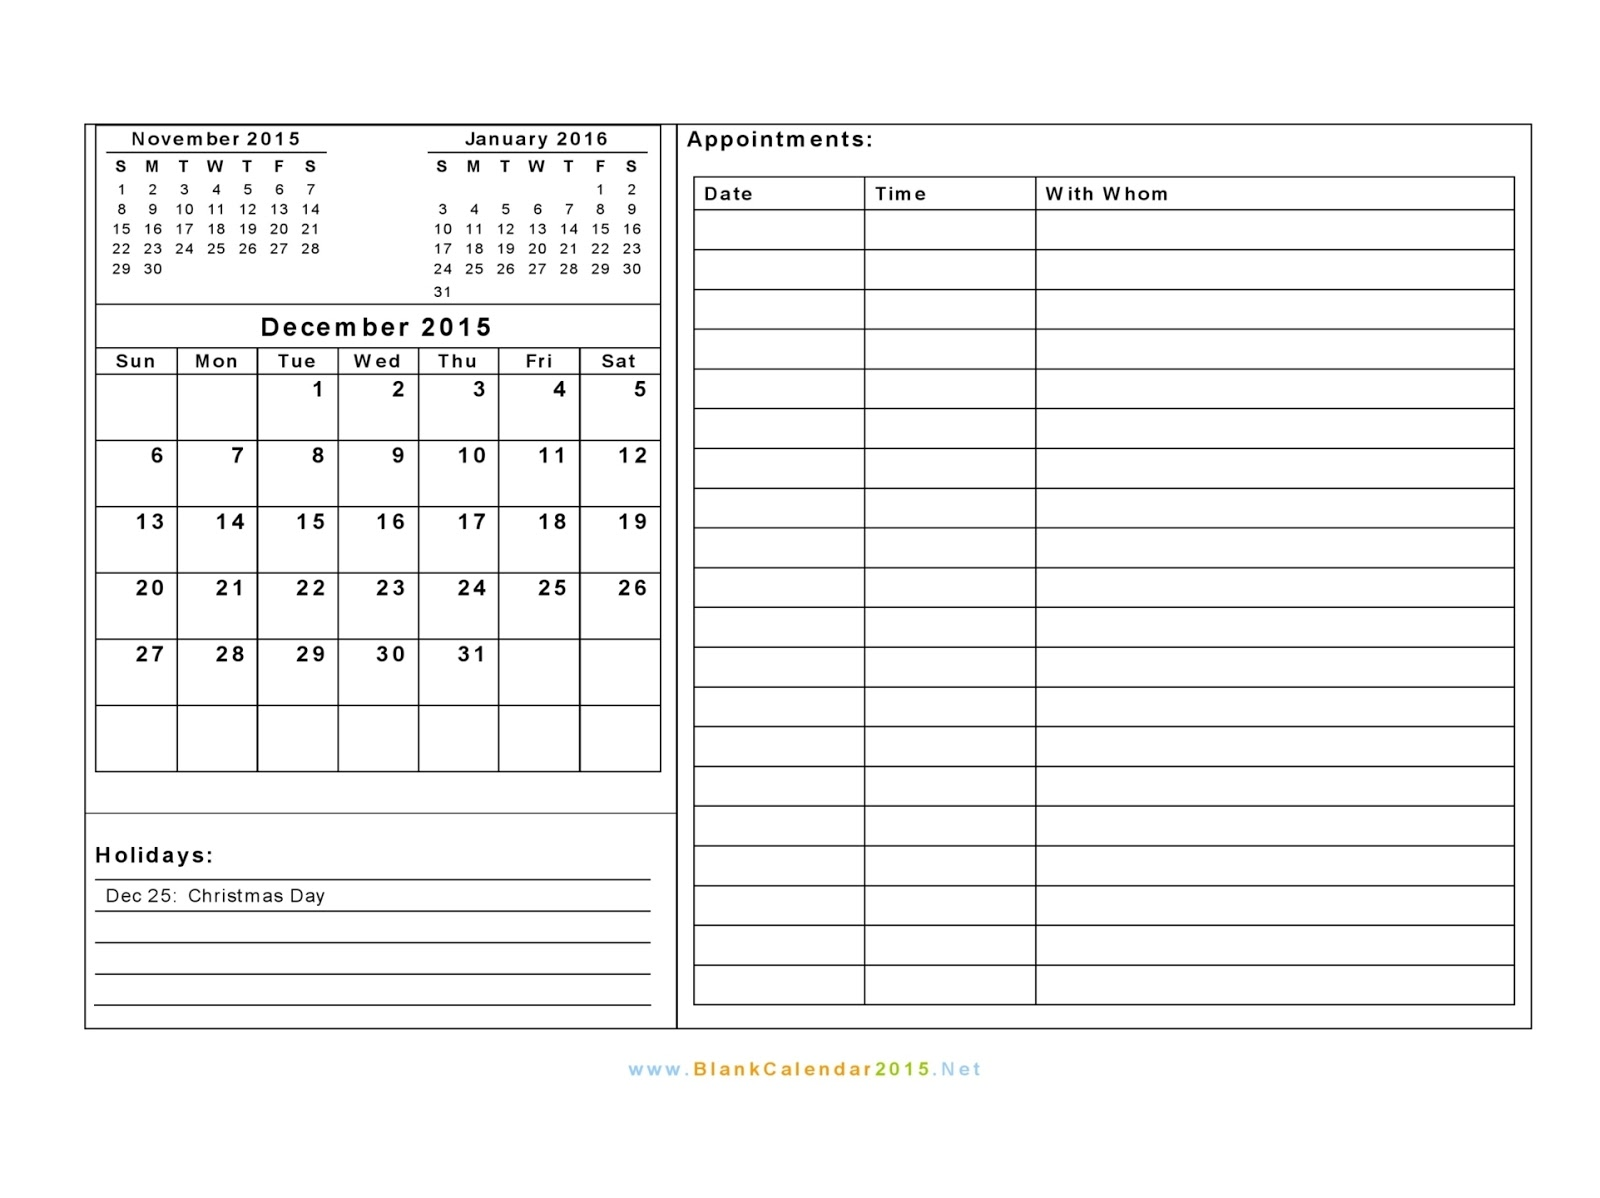 December 2015 Appointment Calendar Printable | Calendar Template 2016